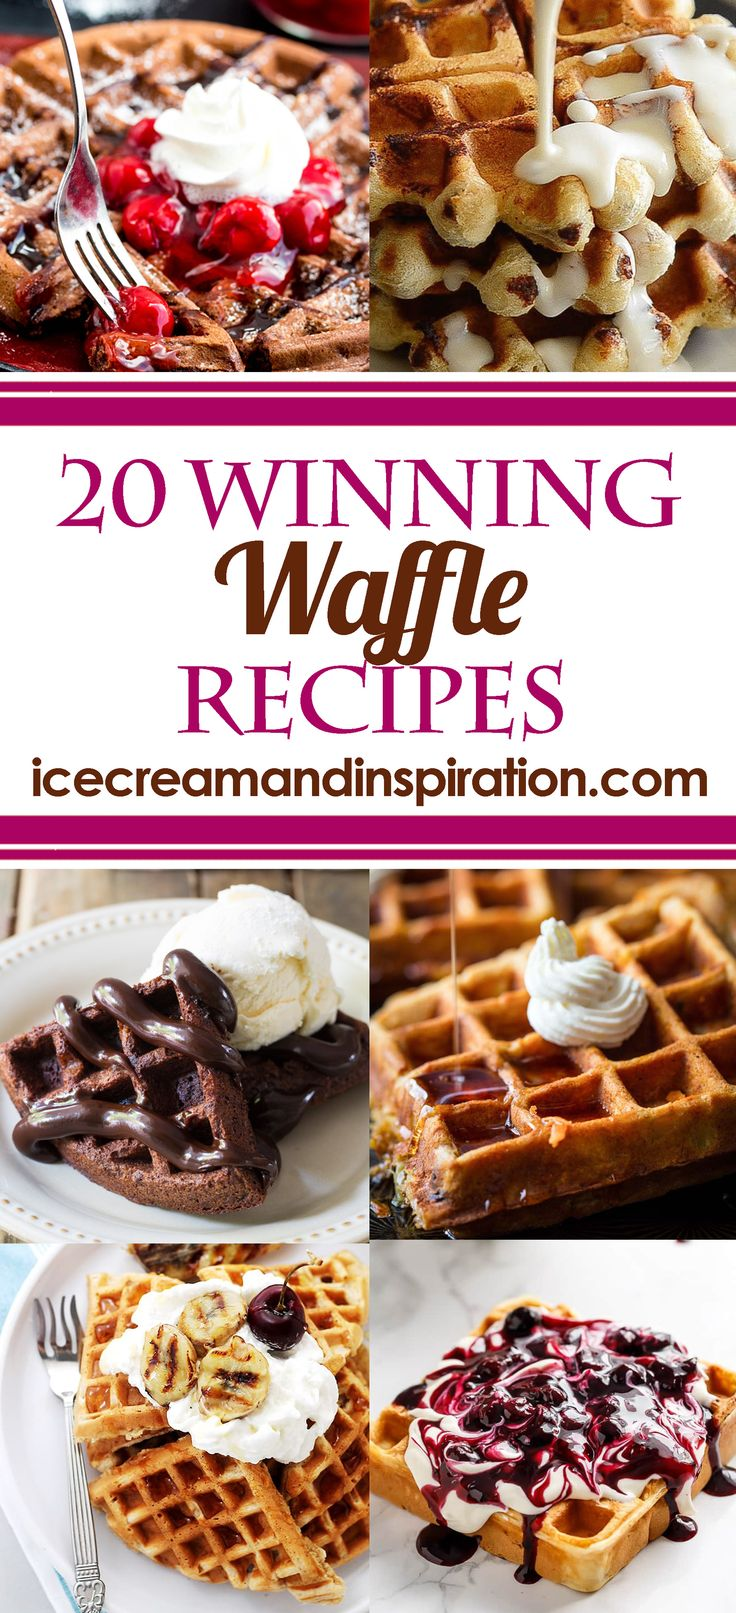 Try these 2o Winning Waffle Recipes for breakfast, or dessert! Banana, lemon, and blueberry waffles, along with chocolate, cinnamon, and doughnut waffles!